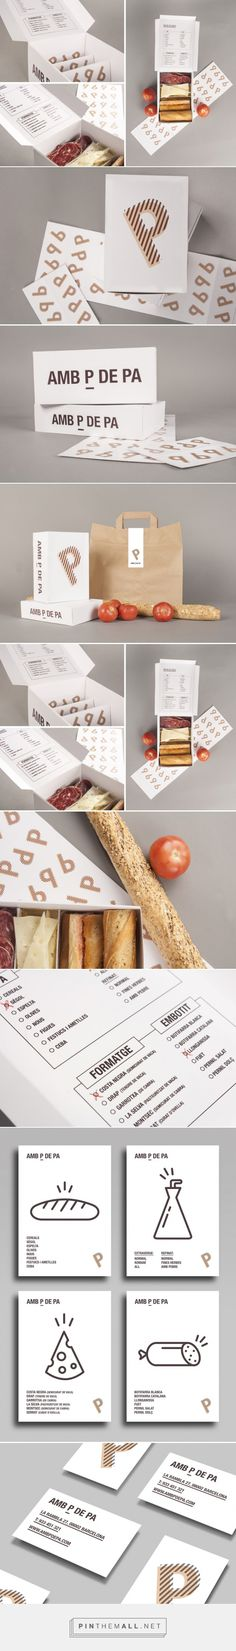 AMB P DE PA (Student Project) by Silvia Albertí, Laia Fusté & Miriam Vilaplana curated by Packaging Diva PD. This packaging makes me hungry how about you? created via http://www.packagingoftheworld.com/2015/02/amb-p-de-pa-student-project.html